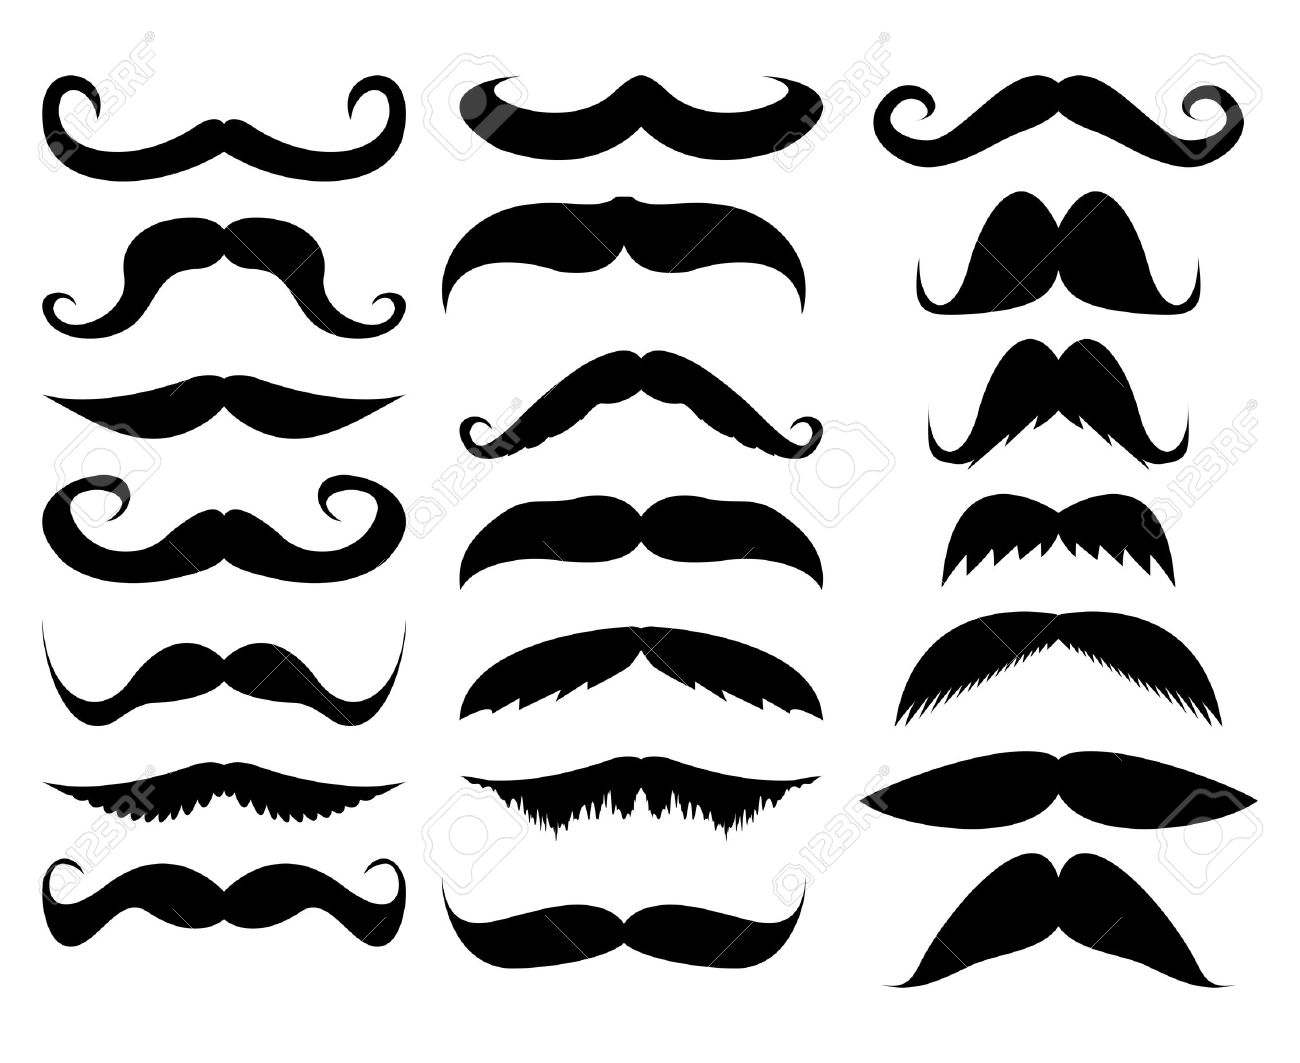 mustache in a set on a white background - 17140310